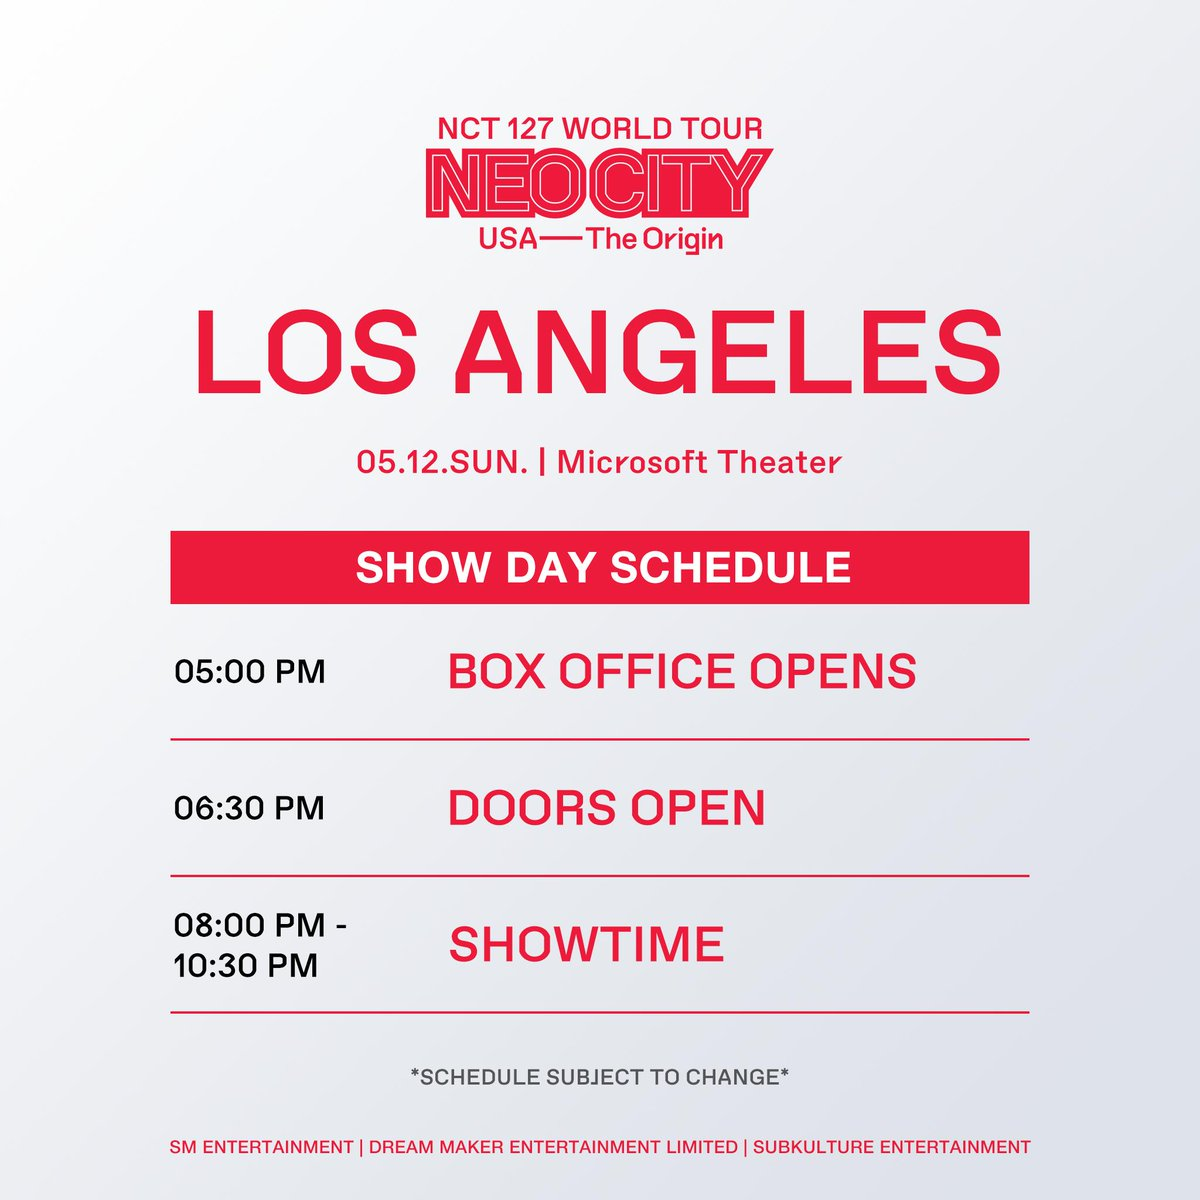 City of Angels  Your show day schedule is finally here for #NEOCITYinLA!  #NCT127inLA #NEOCITYinUSA #NCT127inUSA #NCT127  For :  https://www. axs.com/events/371937/ nct-127-tickets &nbsp; … <br>http://pic.twitter.com/JUy9LzSSIW